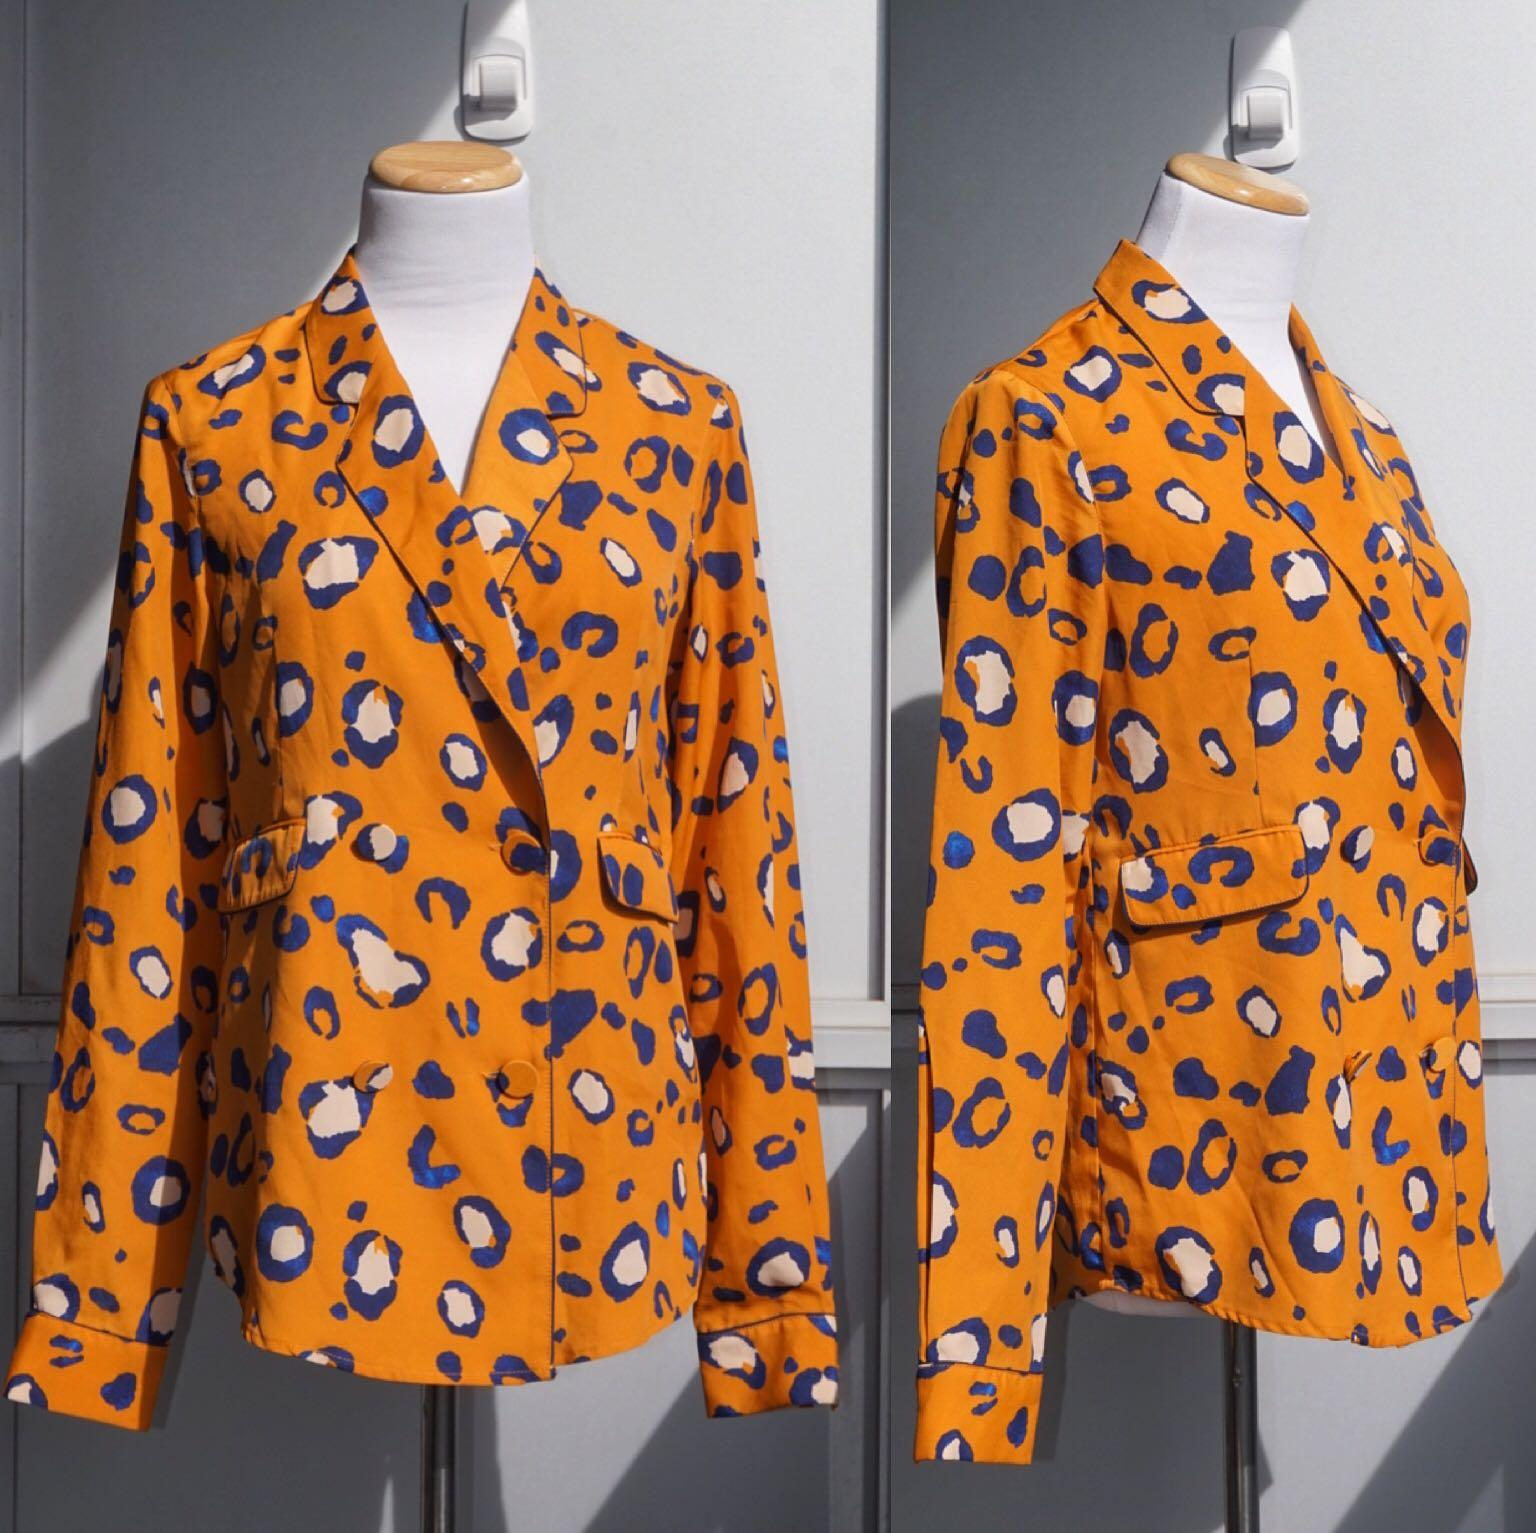 *Like New* 3.1 Phillip Lim For Target Orange Blue Leopard Tuxedo Style Blouse Size XS